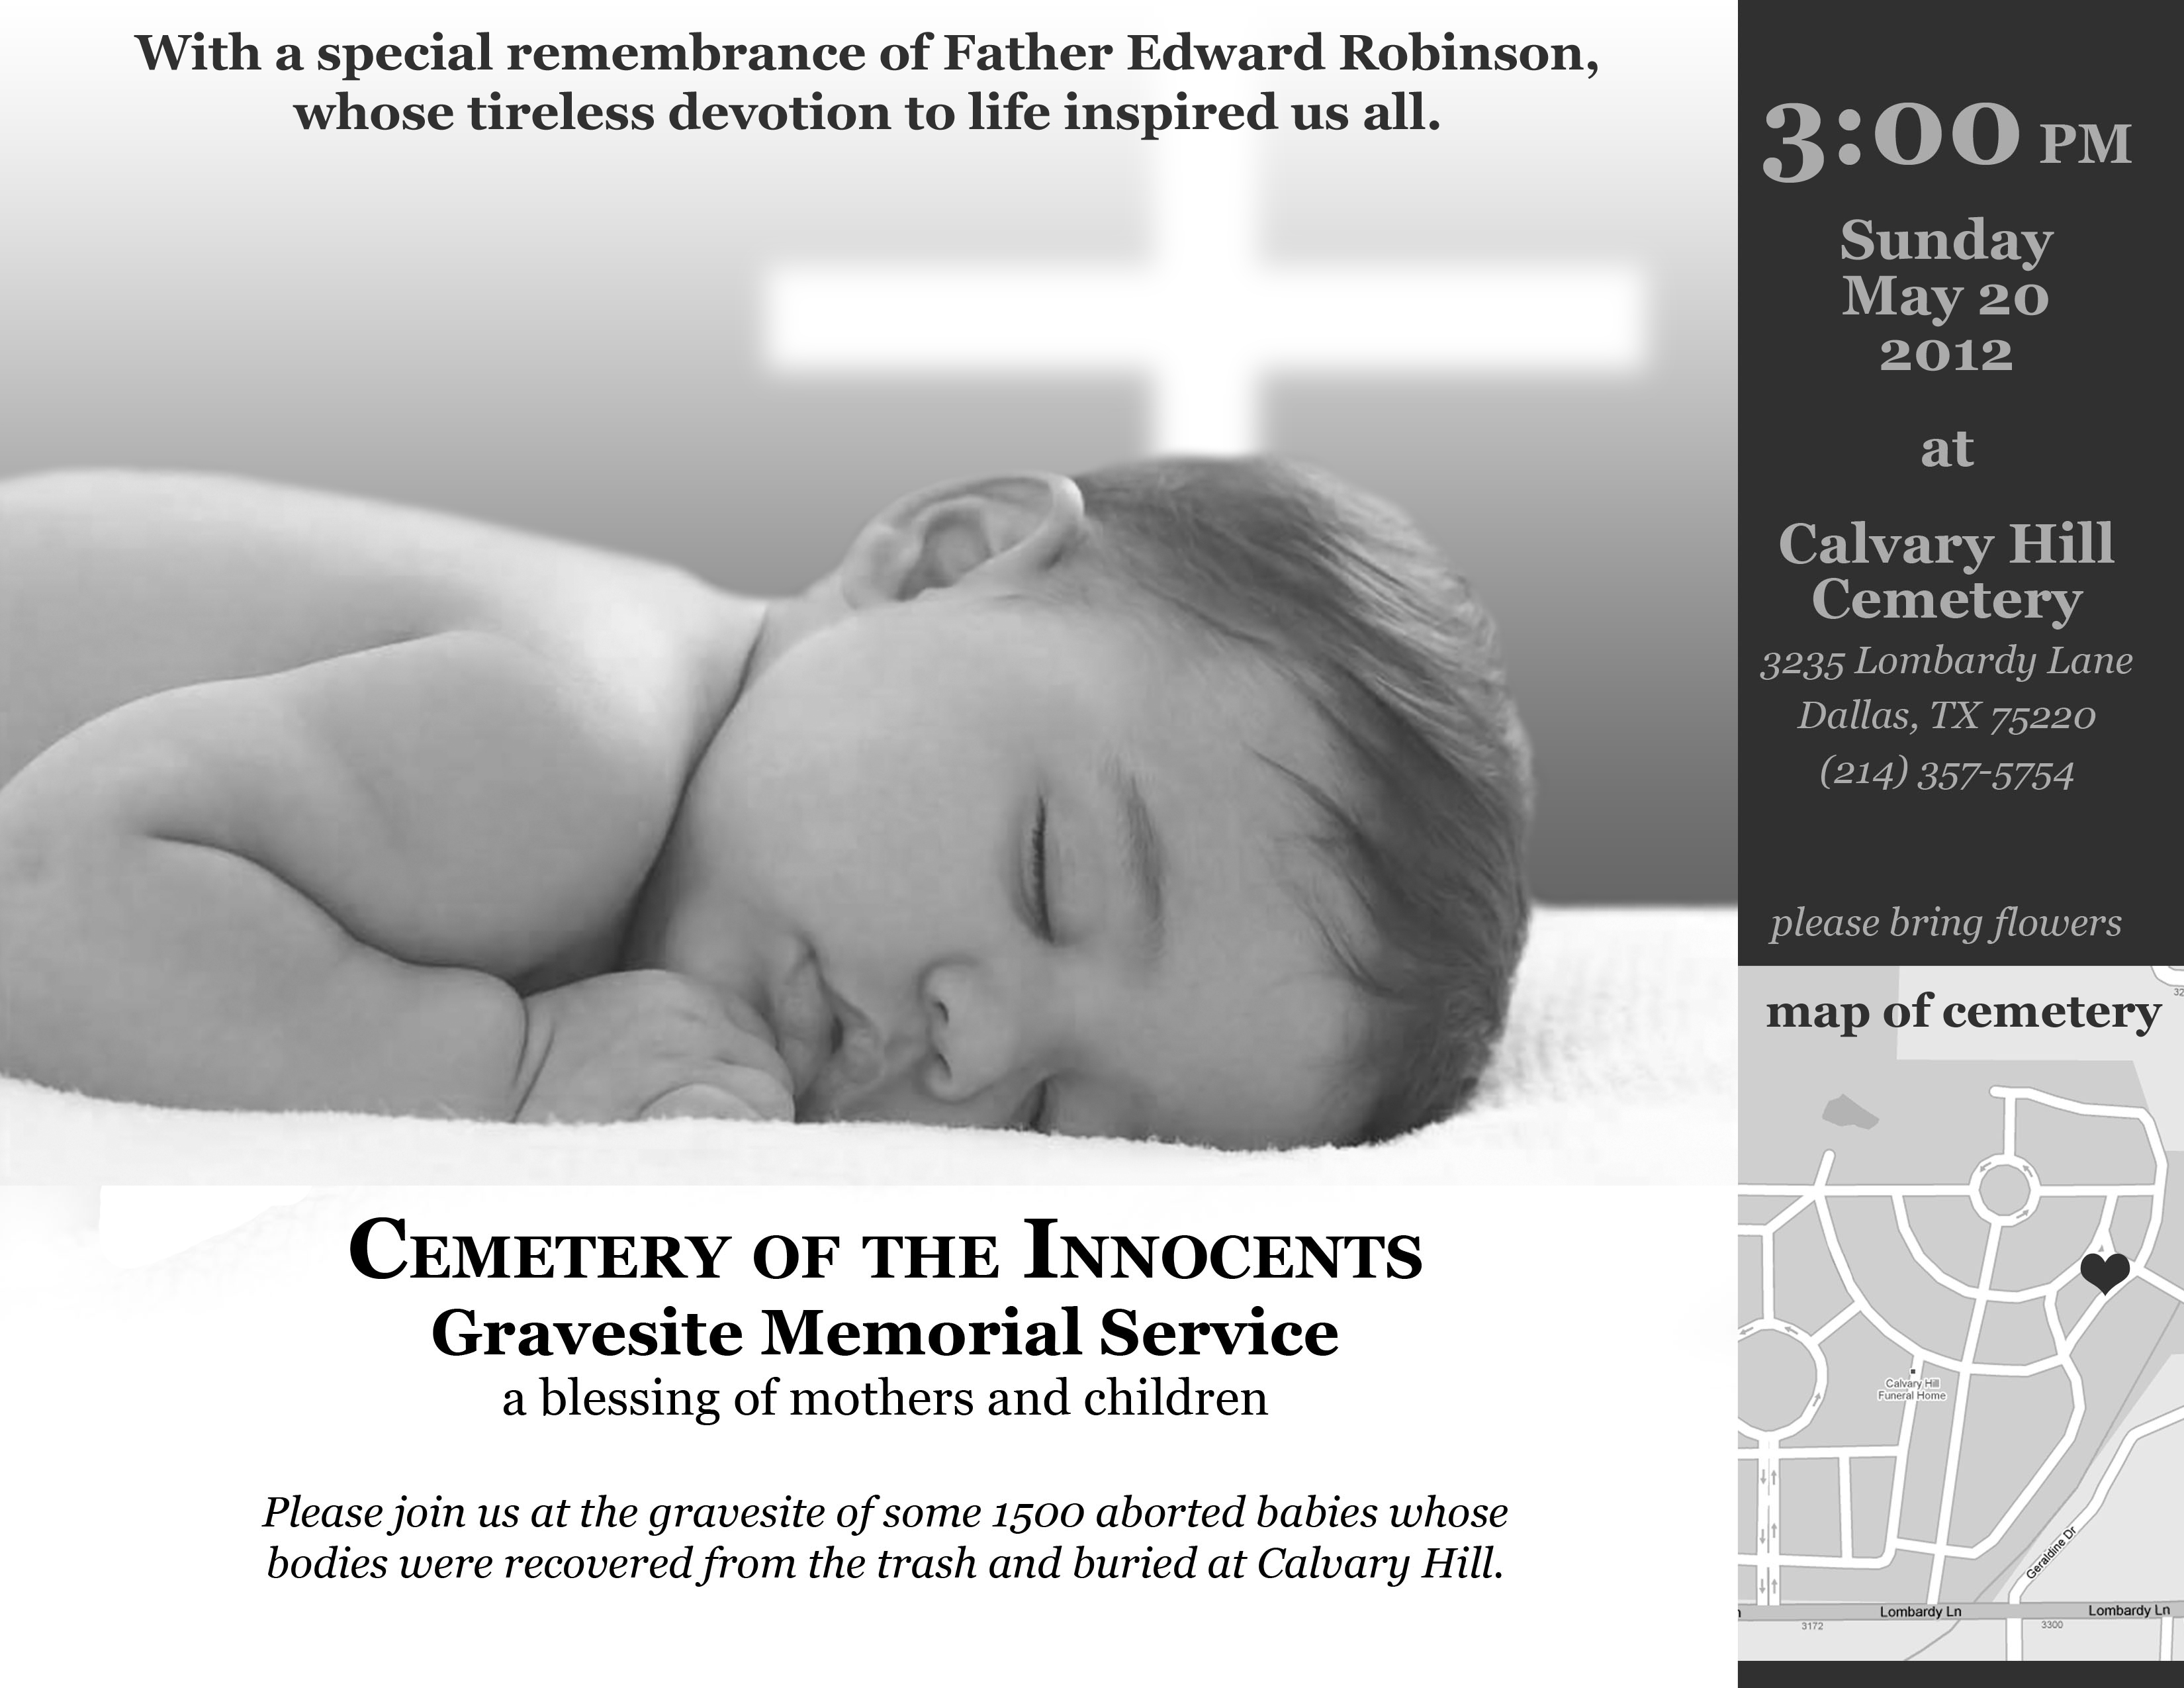 Cemetery_of_the_Innocents_May_20_2012.jpg